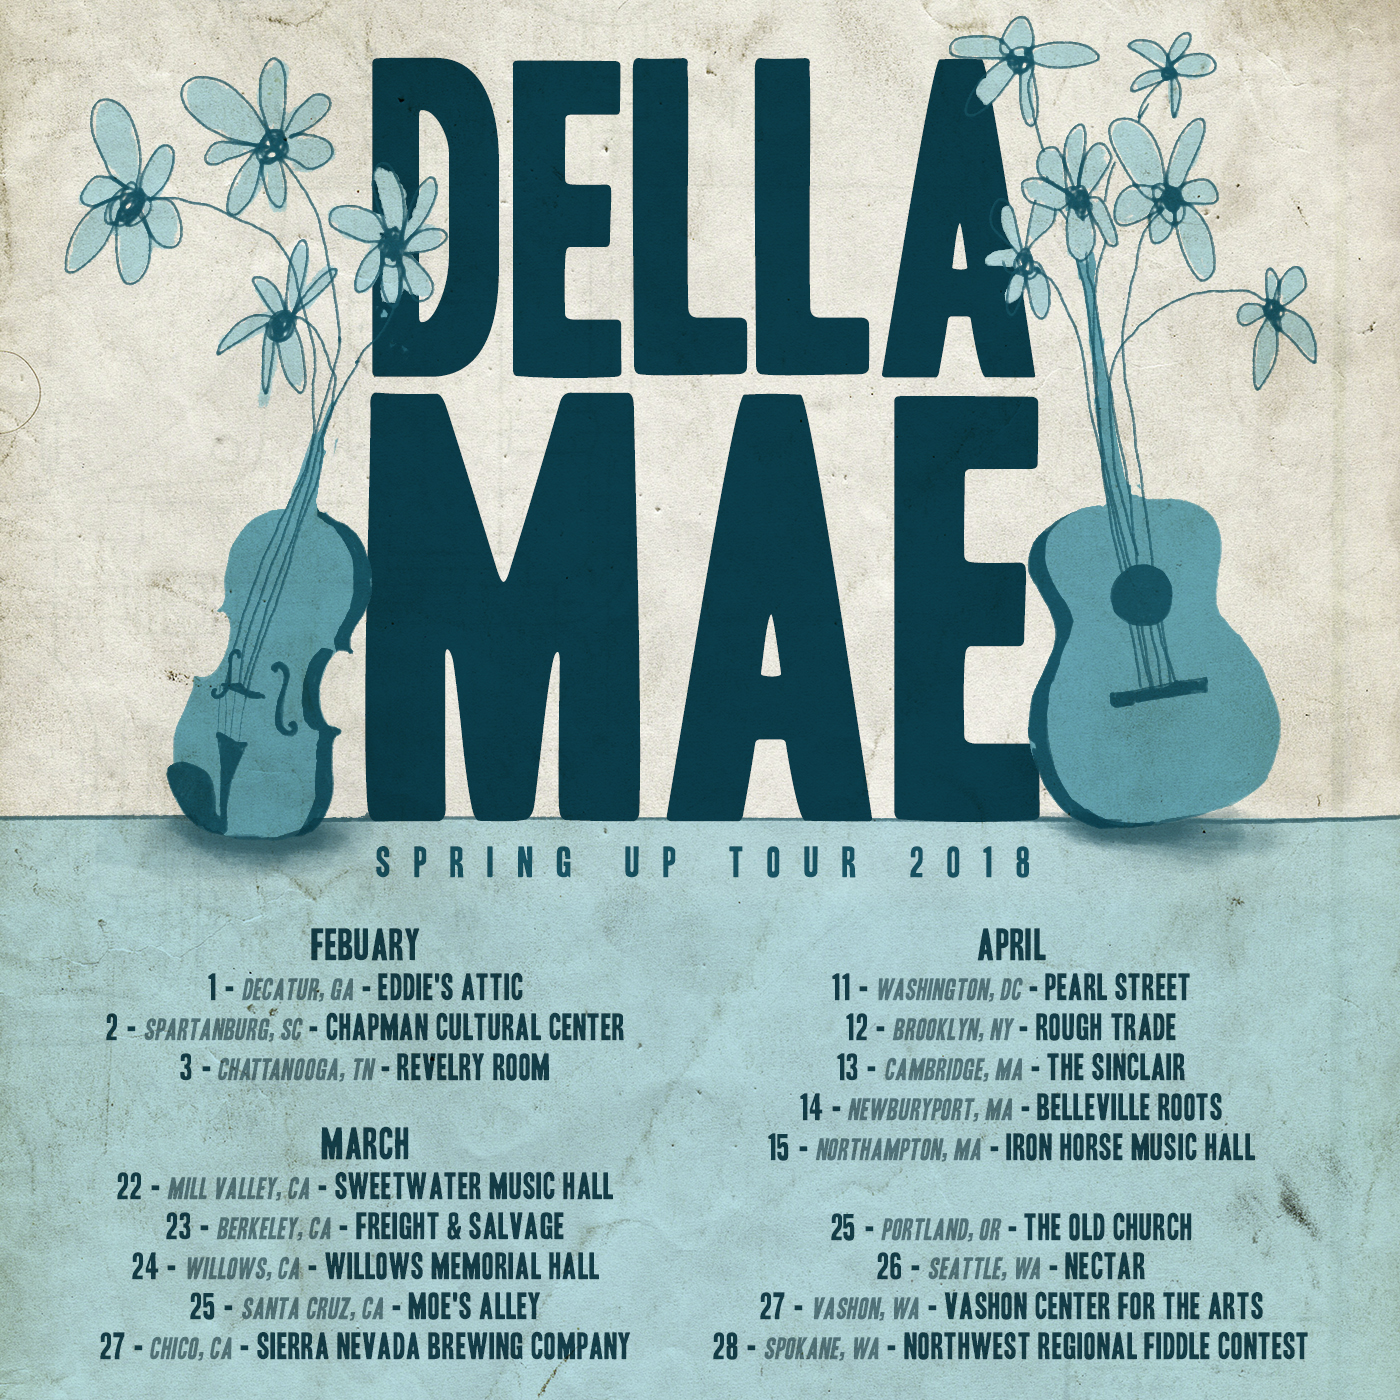 della-mae-tour-graphic-early-2018.jpg